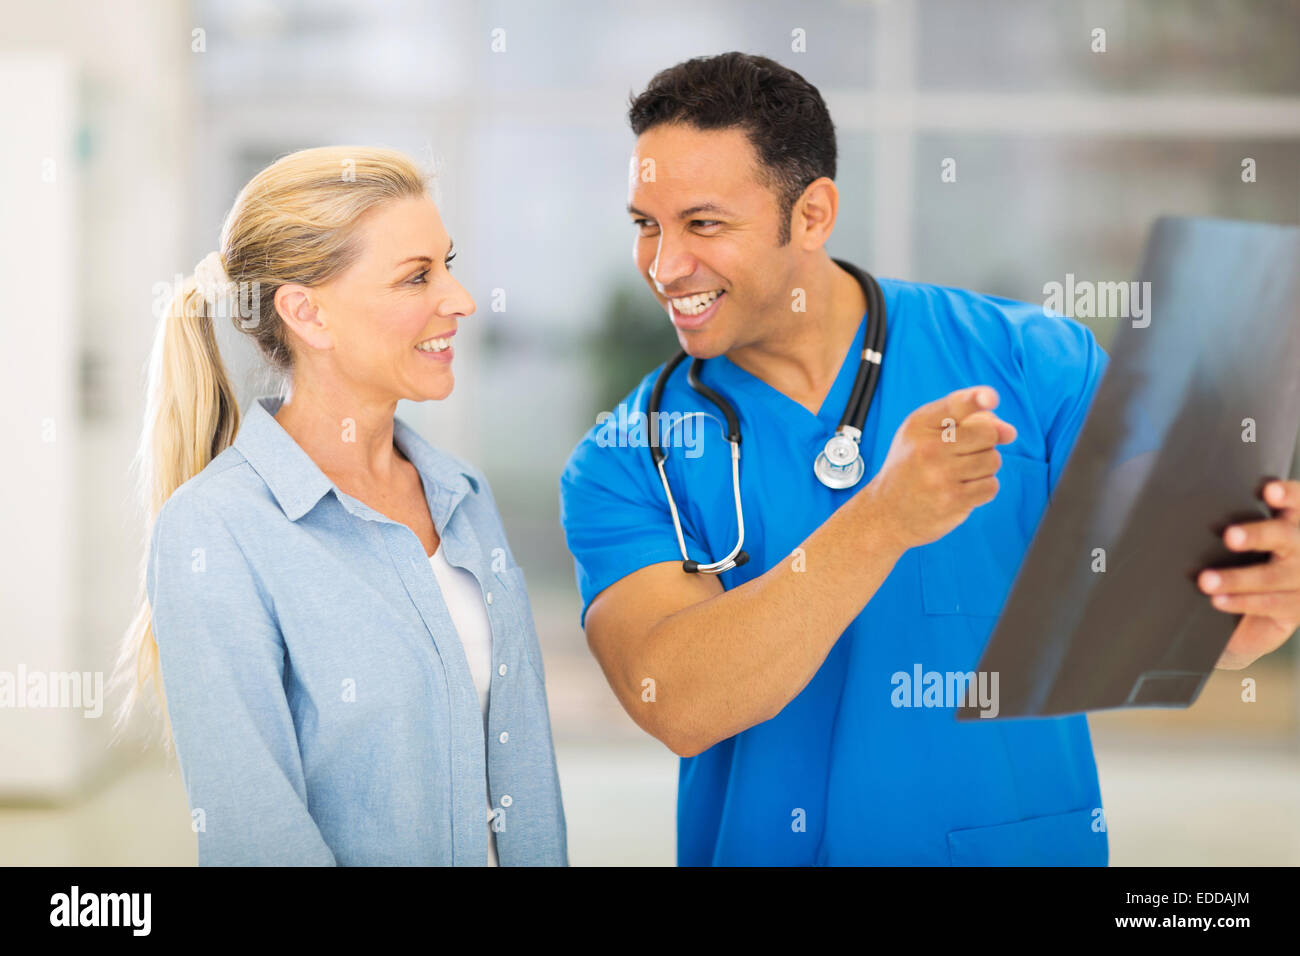 happy doctor and senior patient looking at x-ray result in hospital - Stock Image